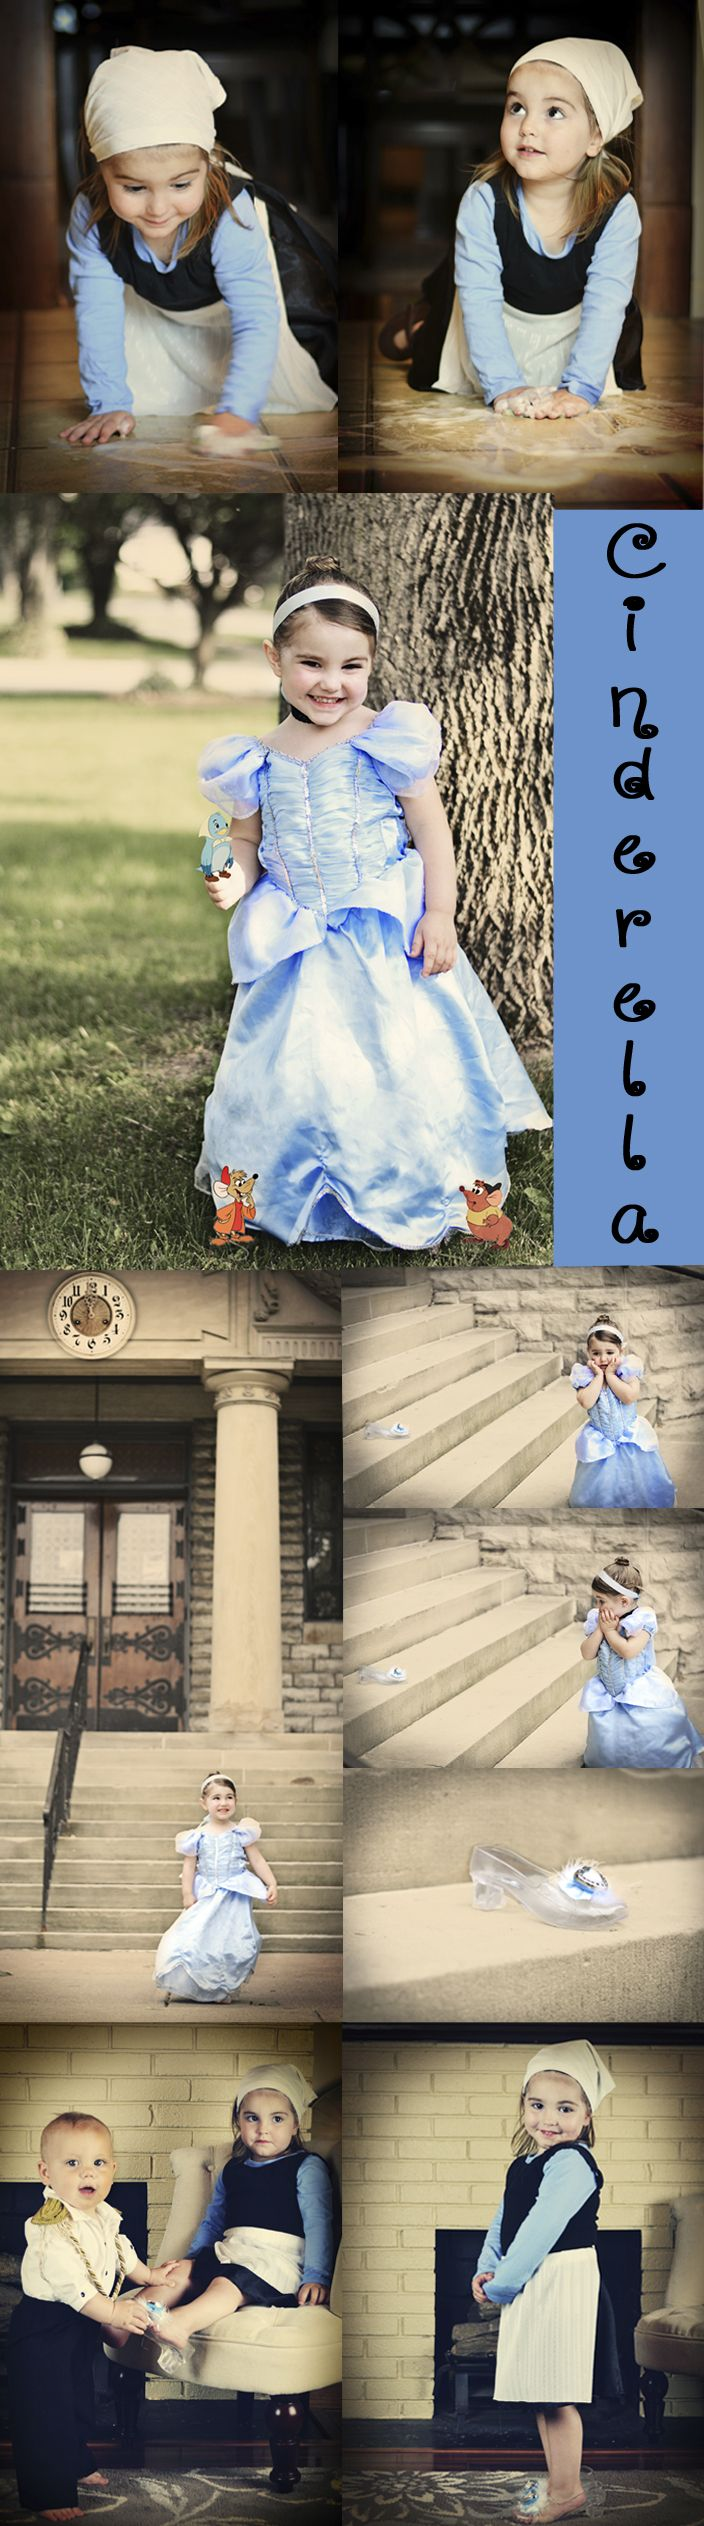 Cinderella Fairy tale Photo Shoot. 3 year old girl. Disney Princess. Sweet Pea Photography. Norwalk, OH